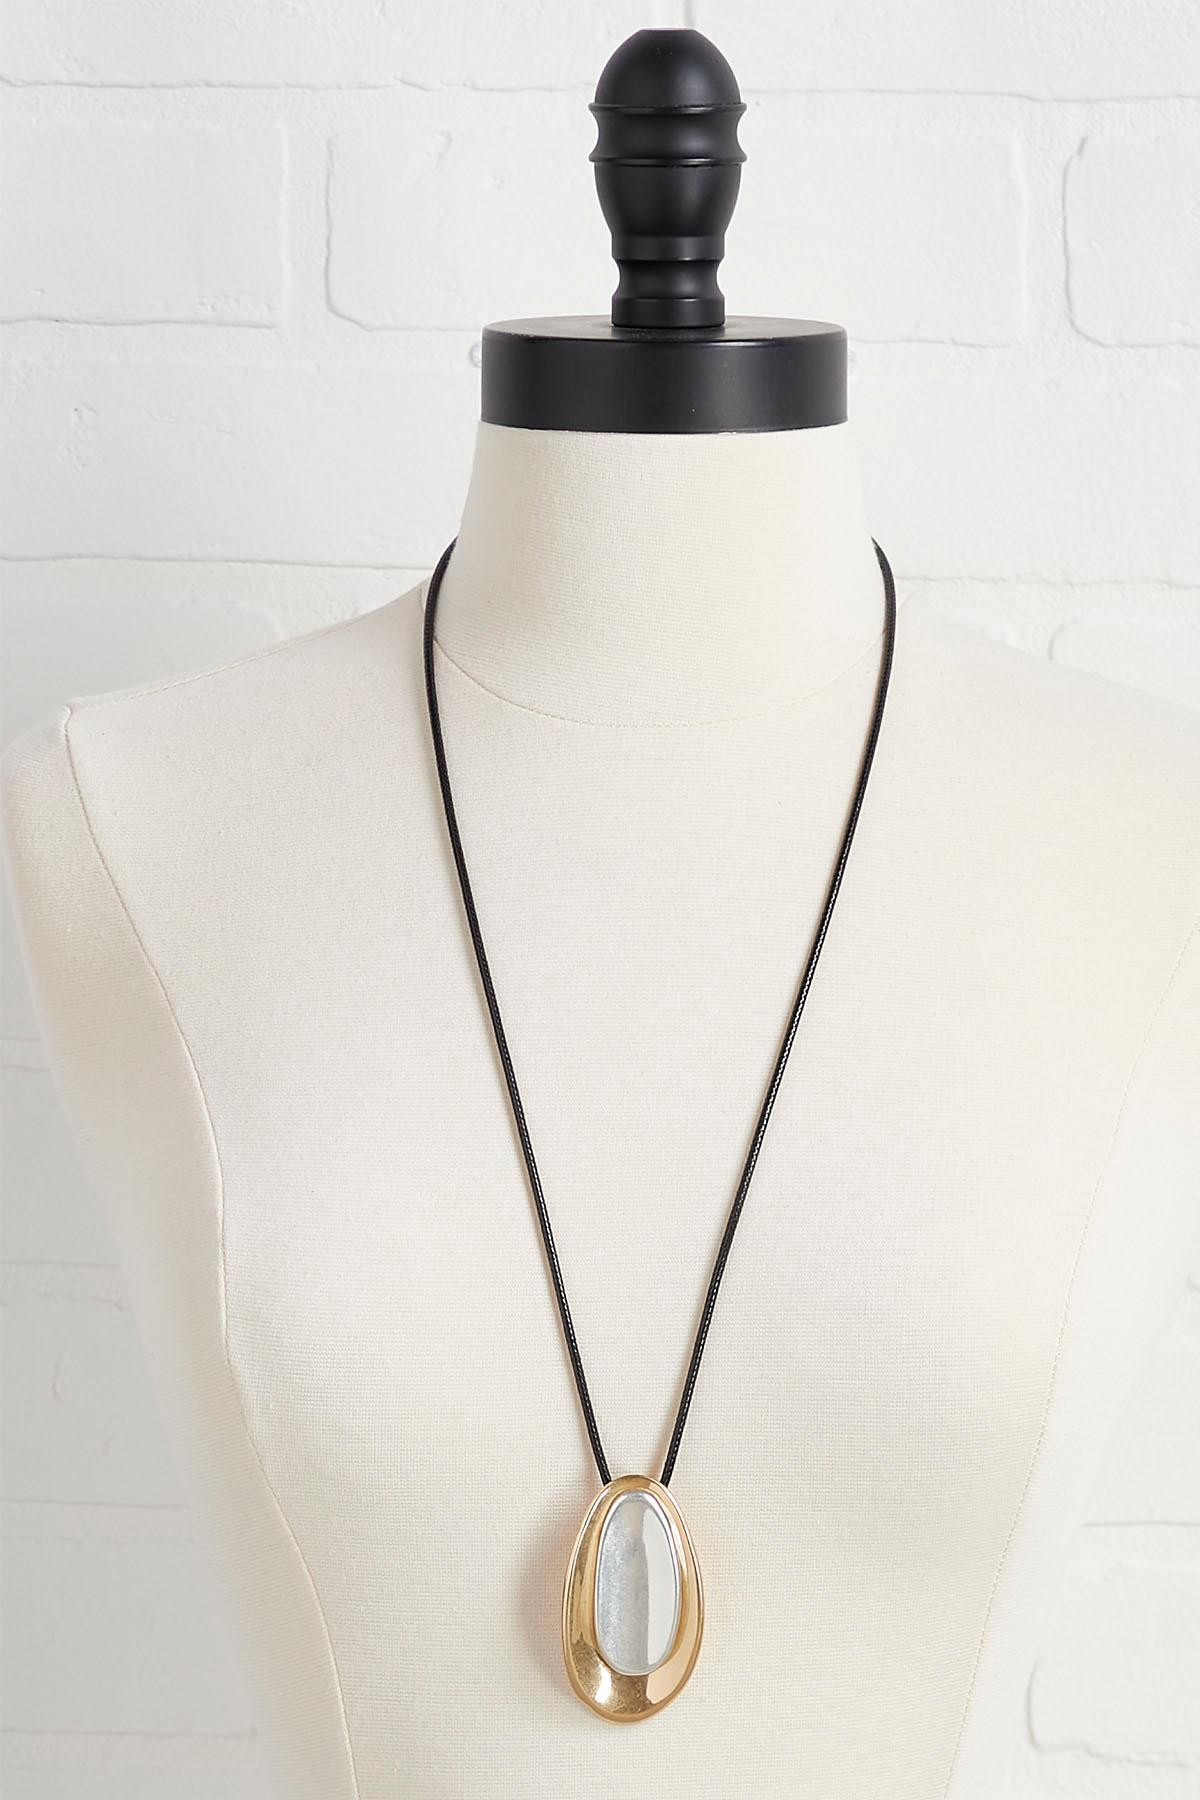 Gold And Silver Pendant Necklace